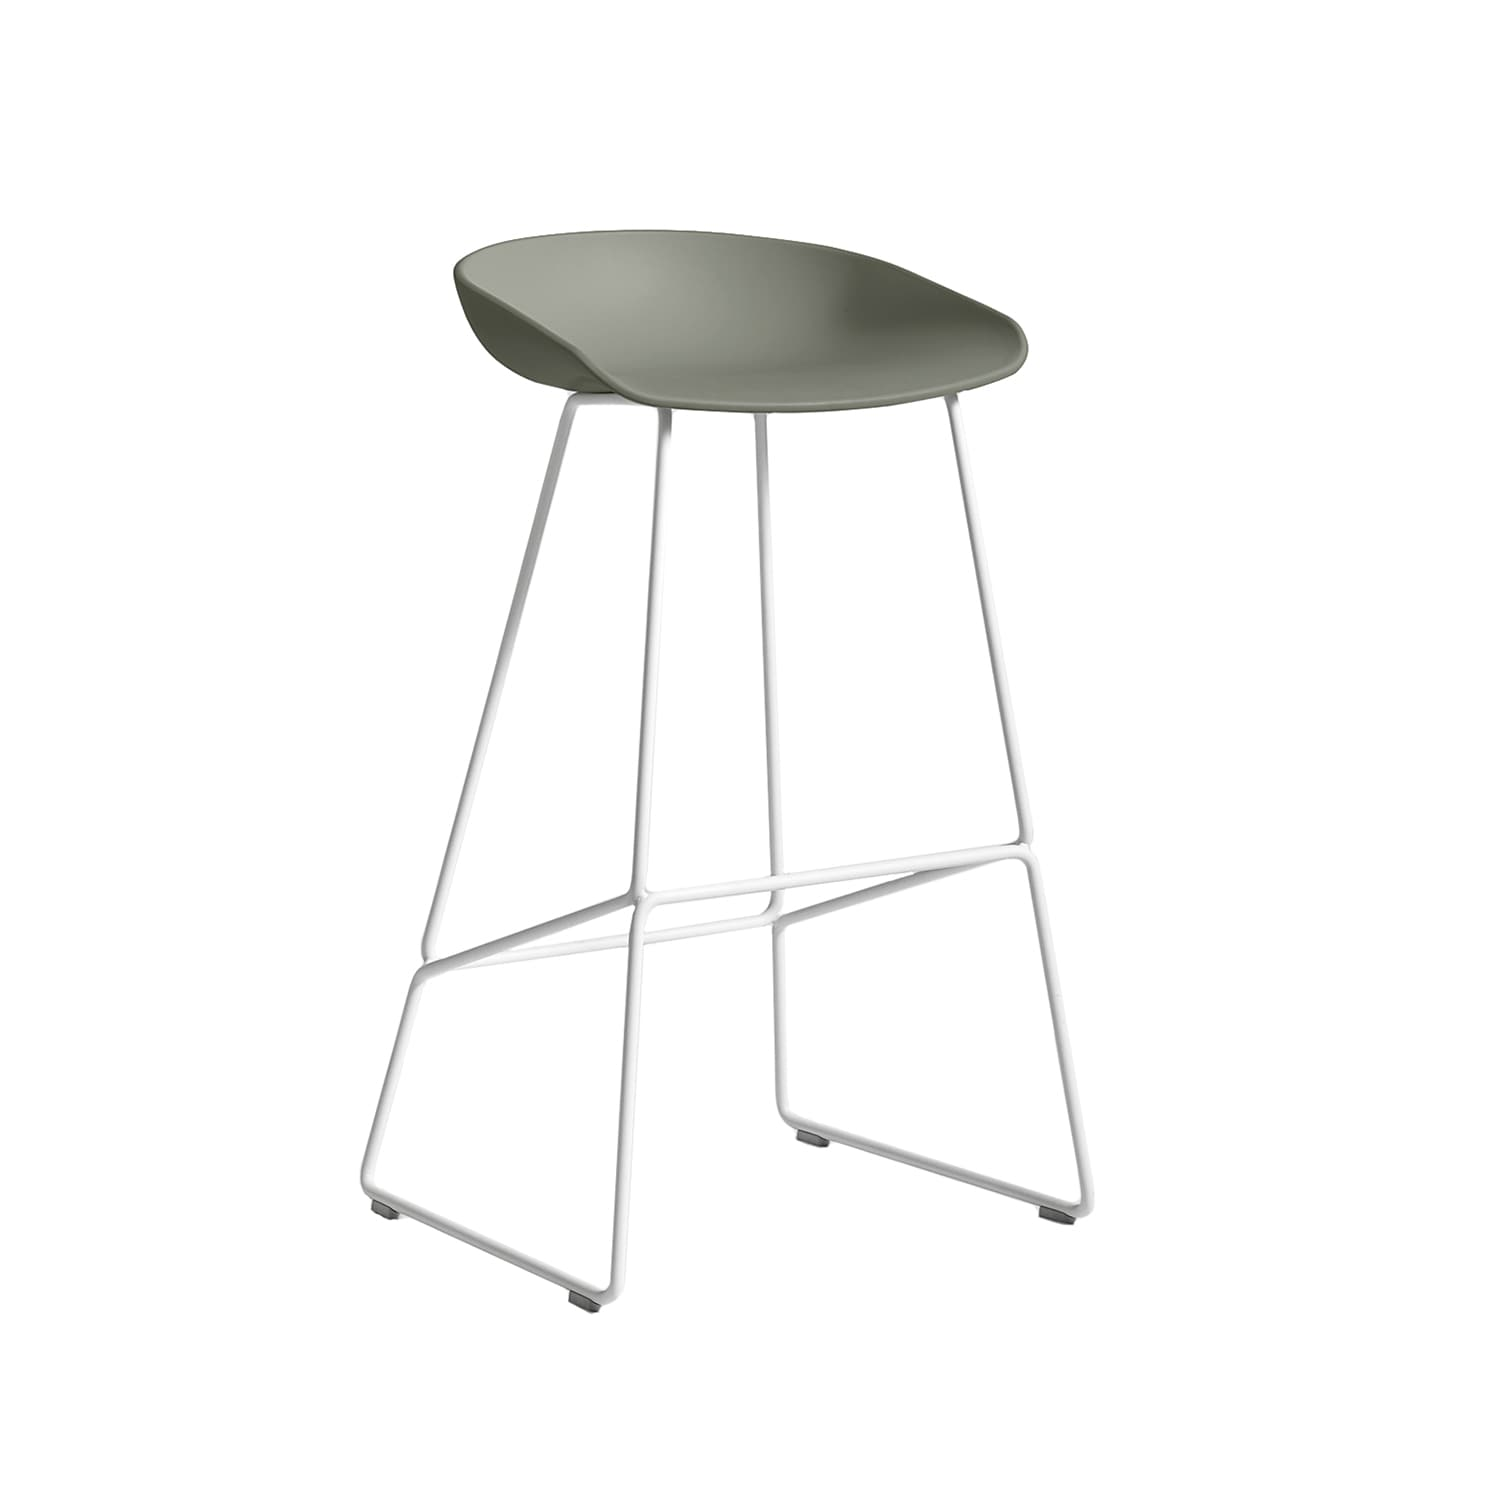 About A Stool 38 Barstol Hög, Dusty GreenVit